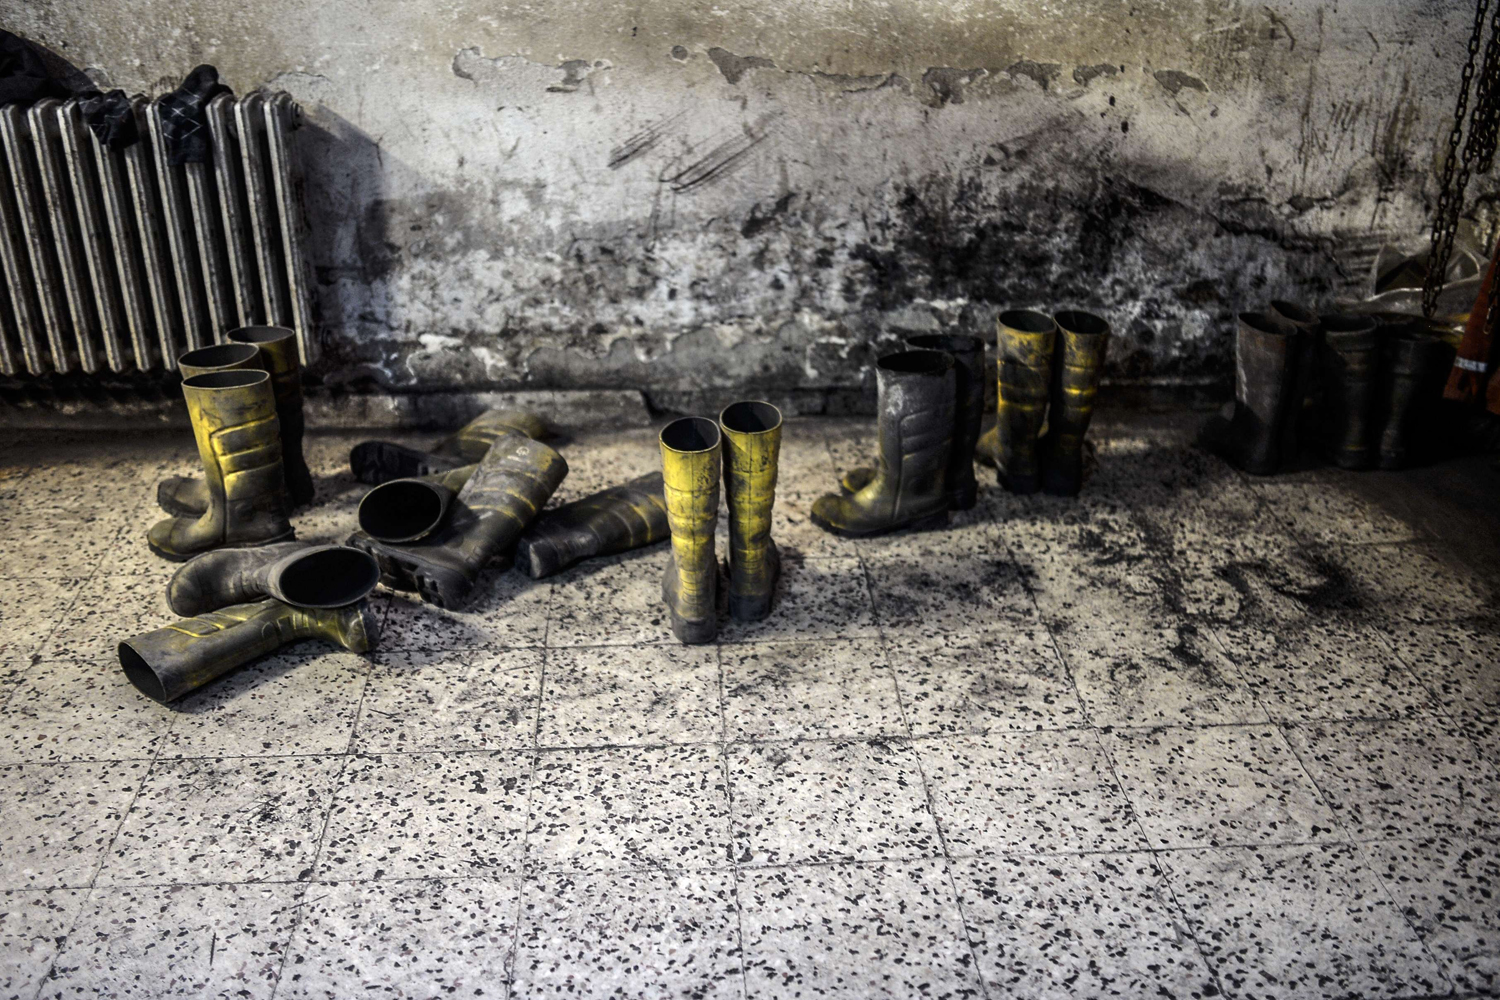 May 14, 2014. Boots of miners are pictured in an outside building after searching for hours hundreds of co-workers who remain trapped underground after an explosion and fire in their coal mine in the western Turkish province of Manisa killed at least 284 people.